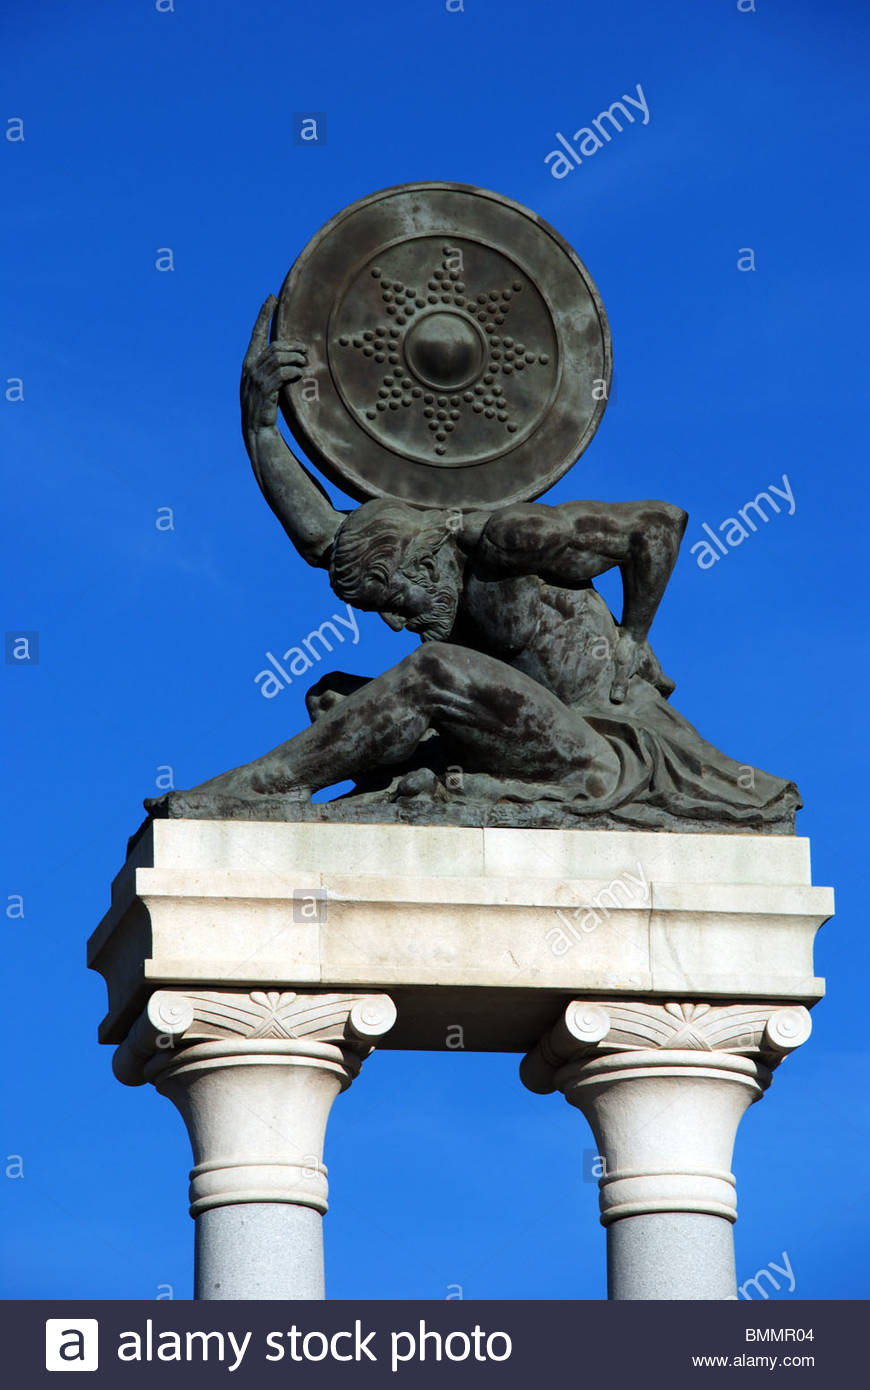 Monument of Hercules holding a shield, Ecija, Seville Province, Andalucia, Spain, Western Europe. - Stock Image